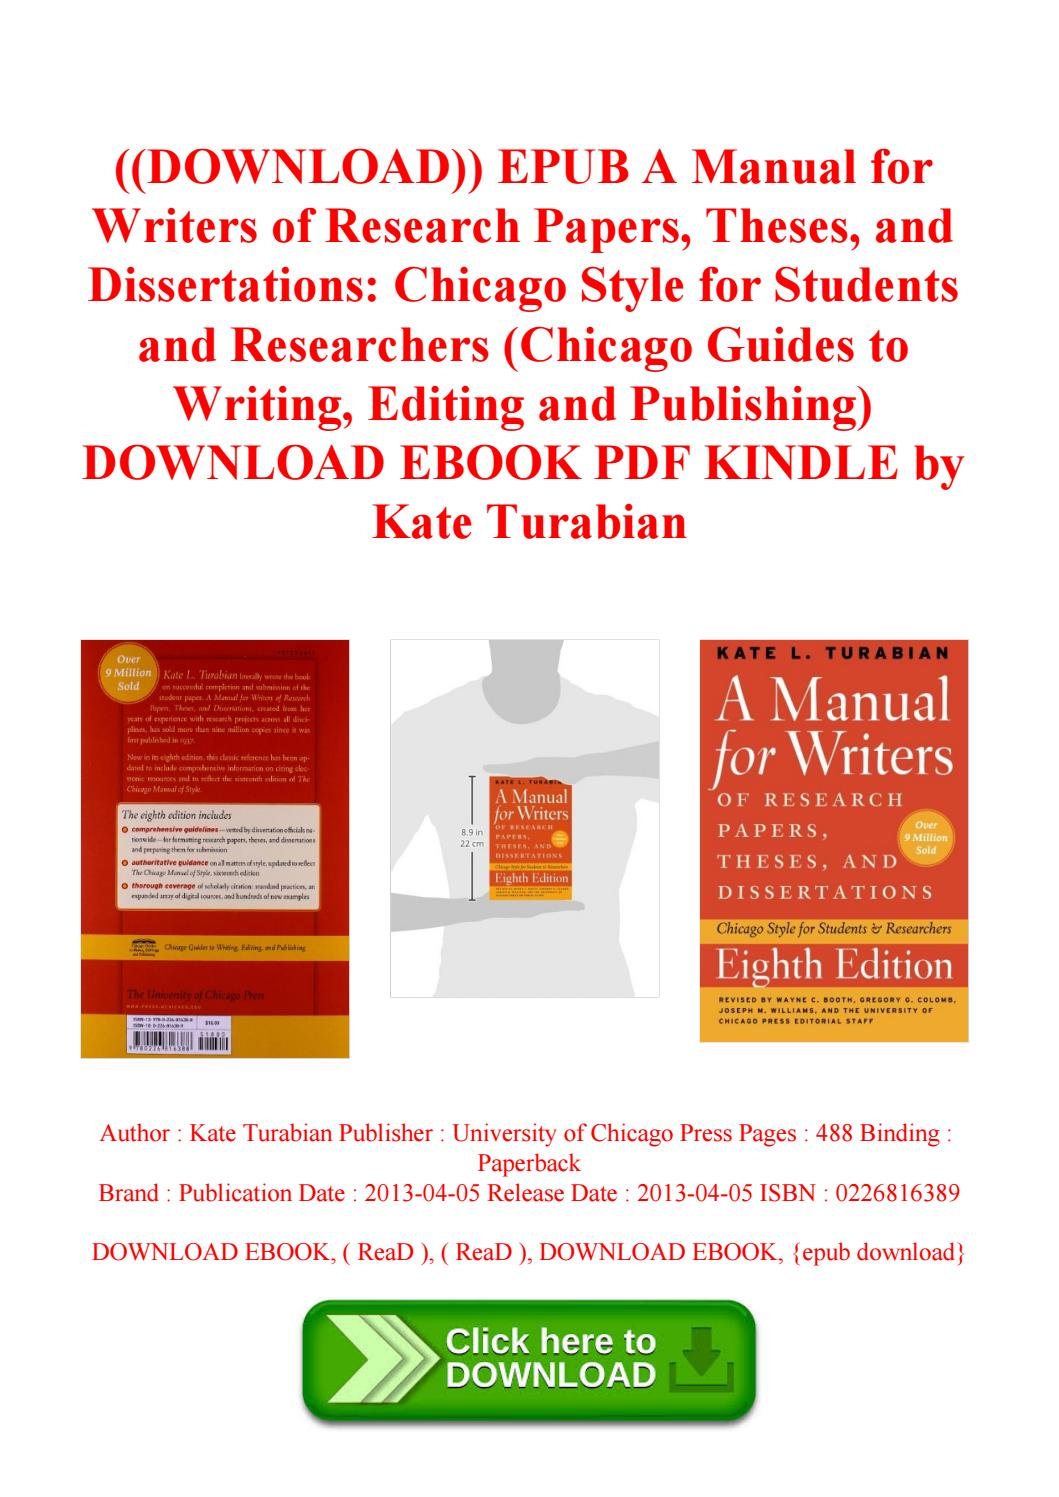 019 Page 1 Manual For Writers Of Researchs Theses And Dissertations Turabian Amazing A Research Papers Pdf Full